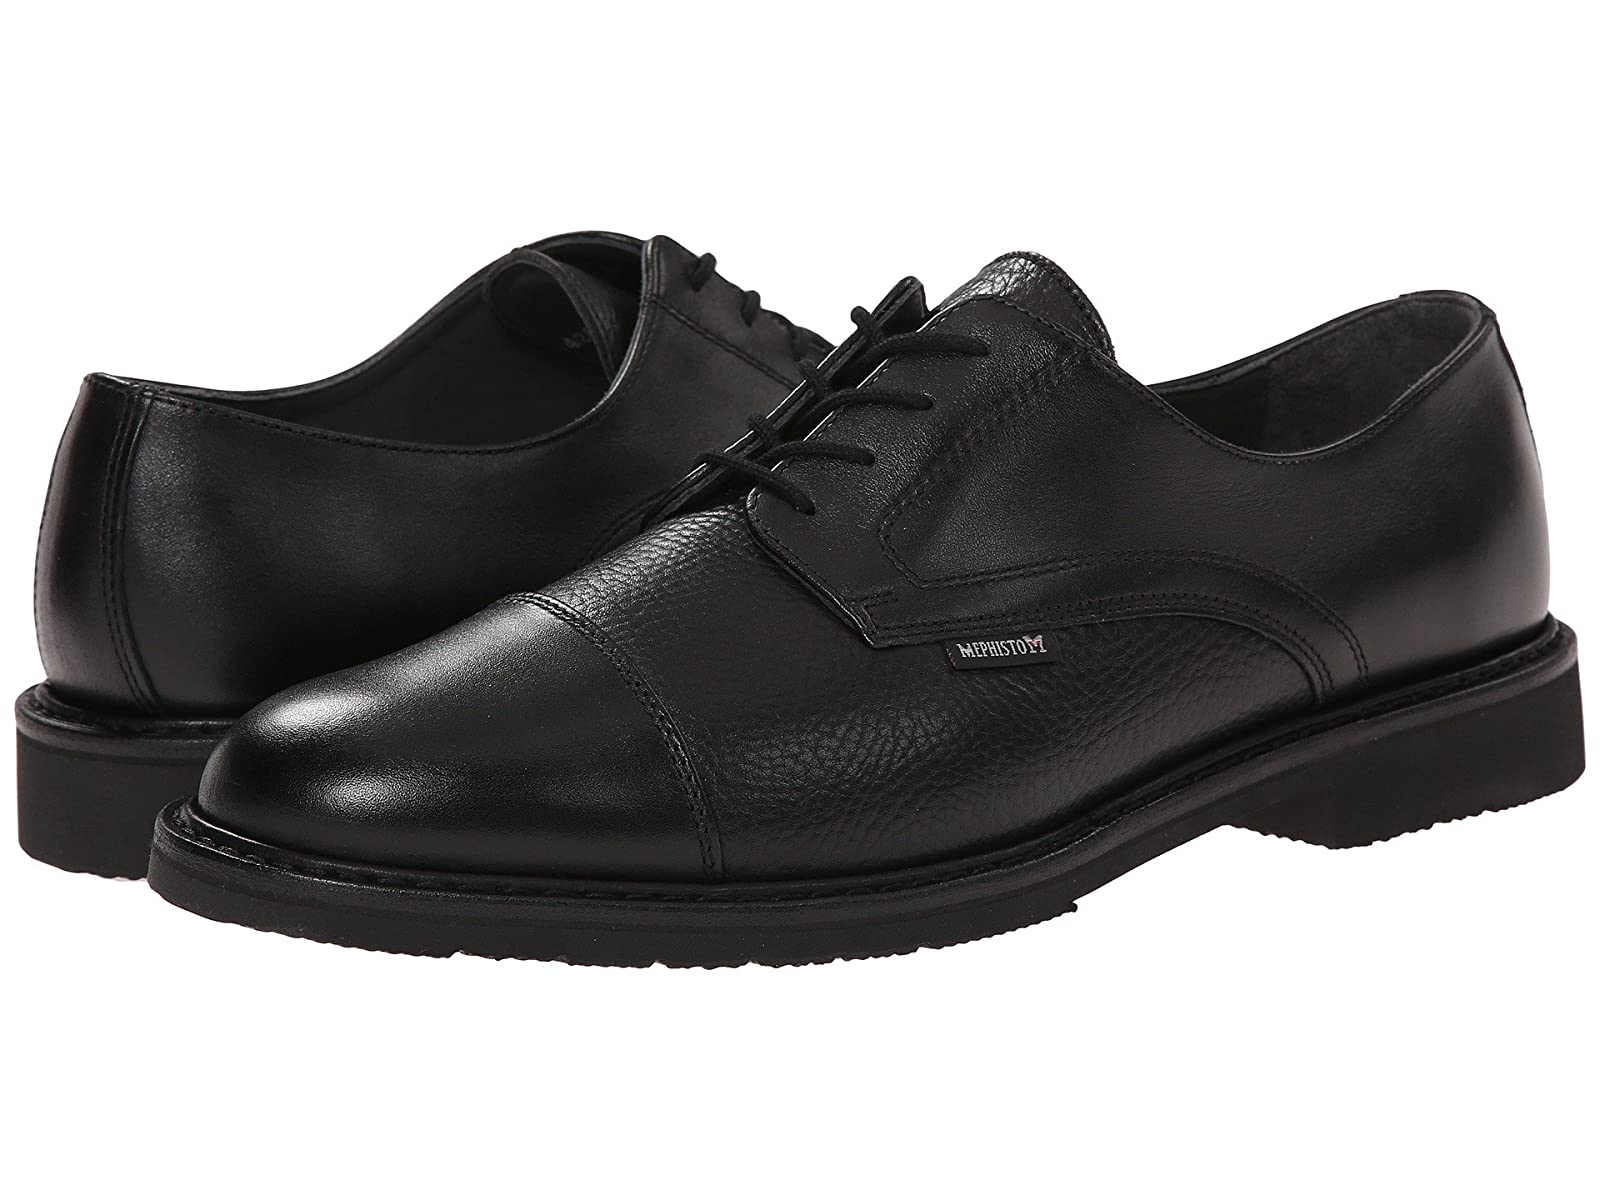 Mephisto MelchiorAtmospheric grades have affordable shoes